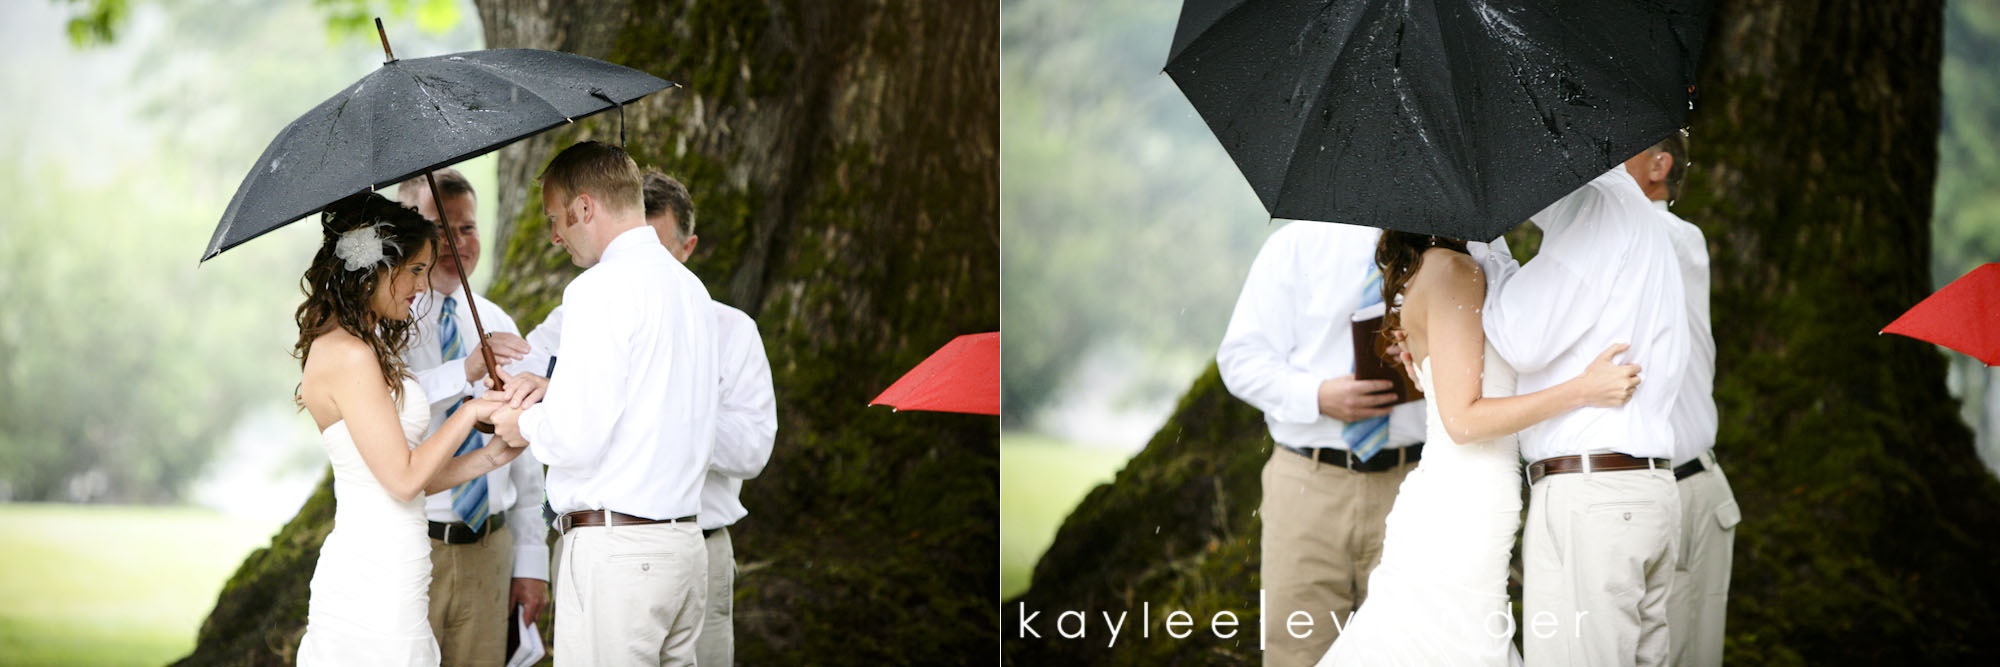 0436 Bellingham DIY Wedding | A Wedding in the rain never looked so good!| Kaylee Eylander